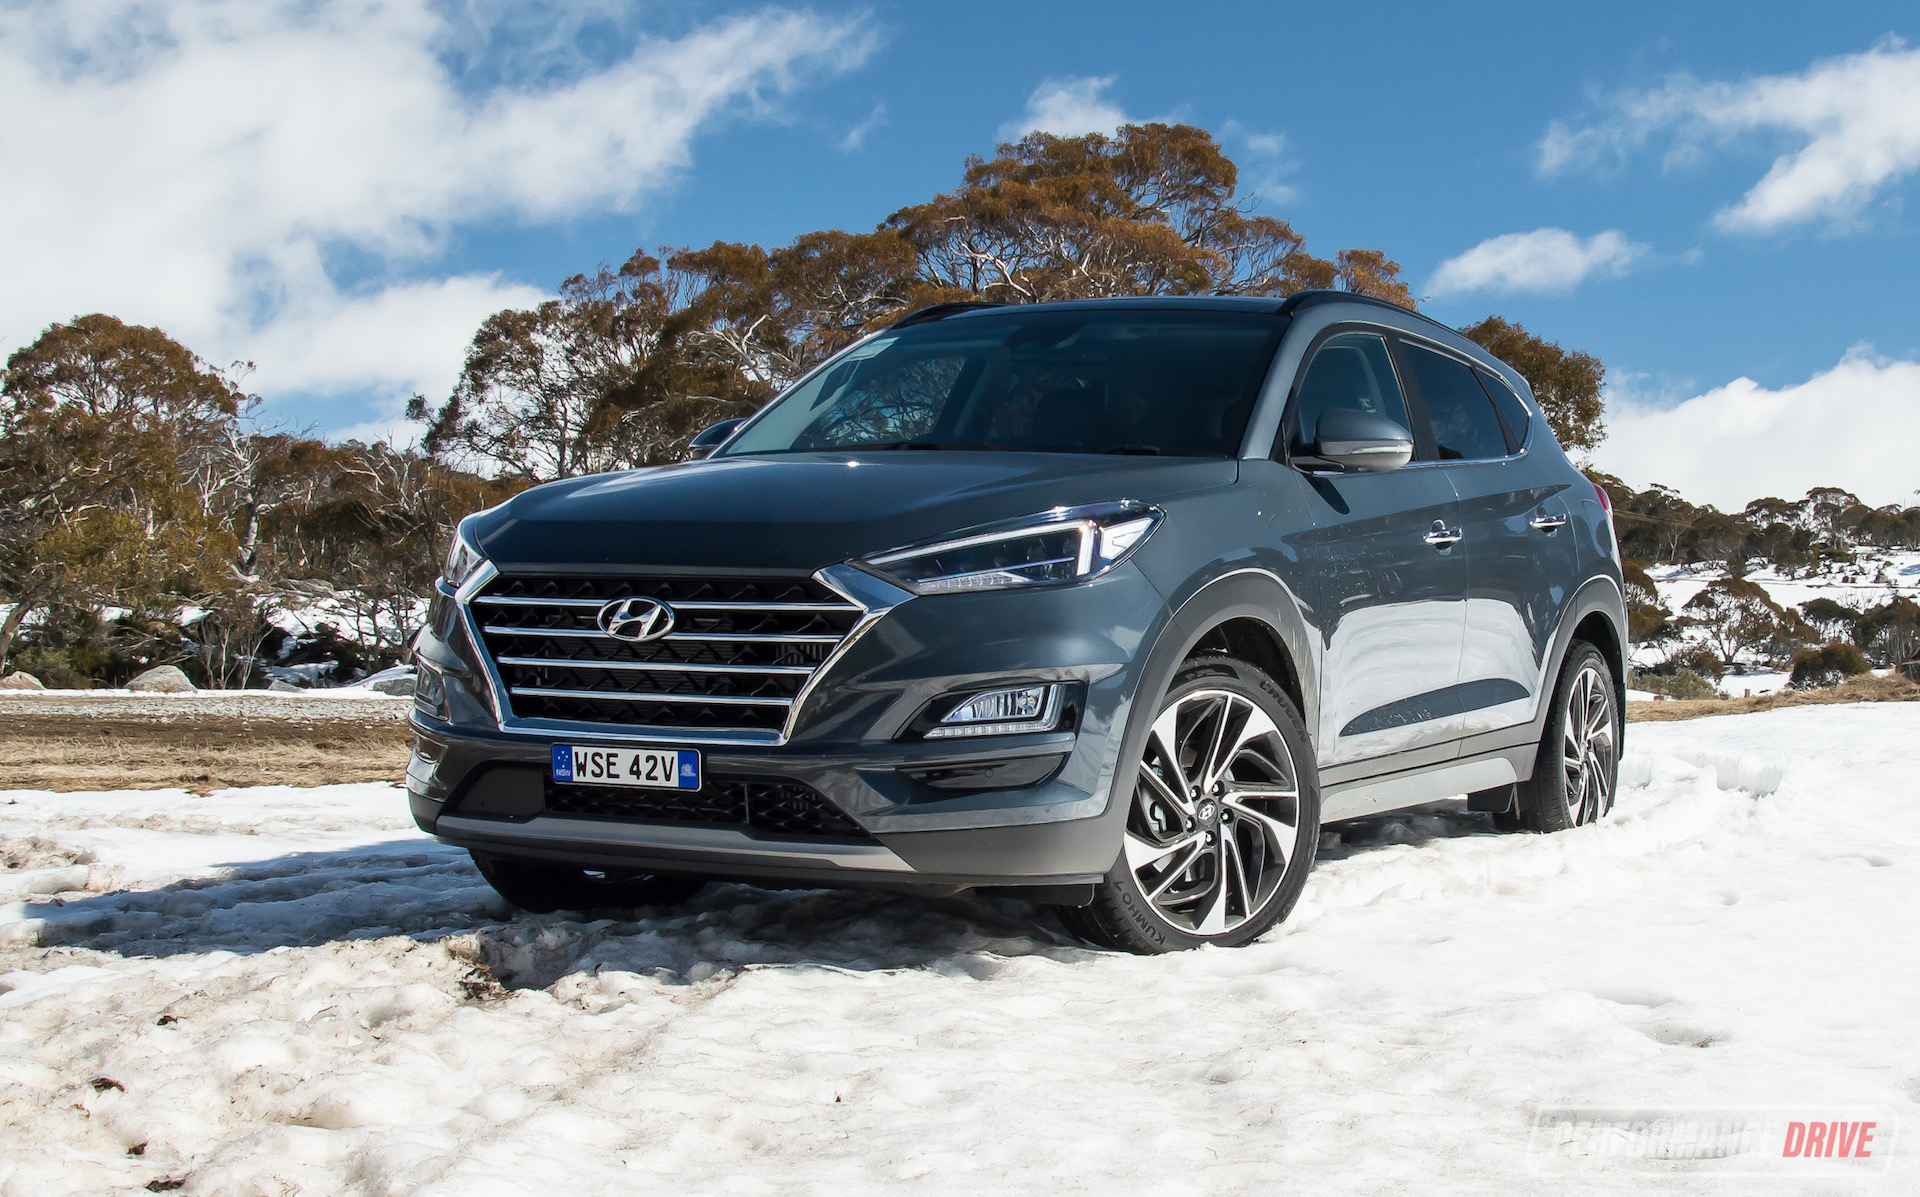 2020 Hyundai Tucson Review.2020 Hyundai Tucson Highlander 1 6t Review Video